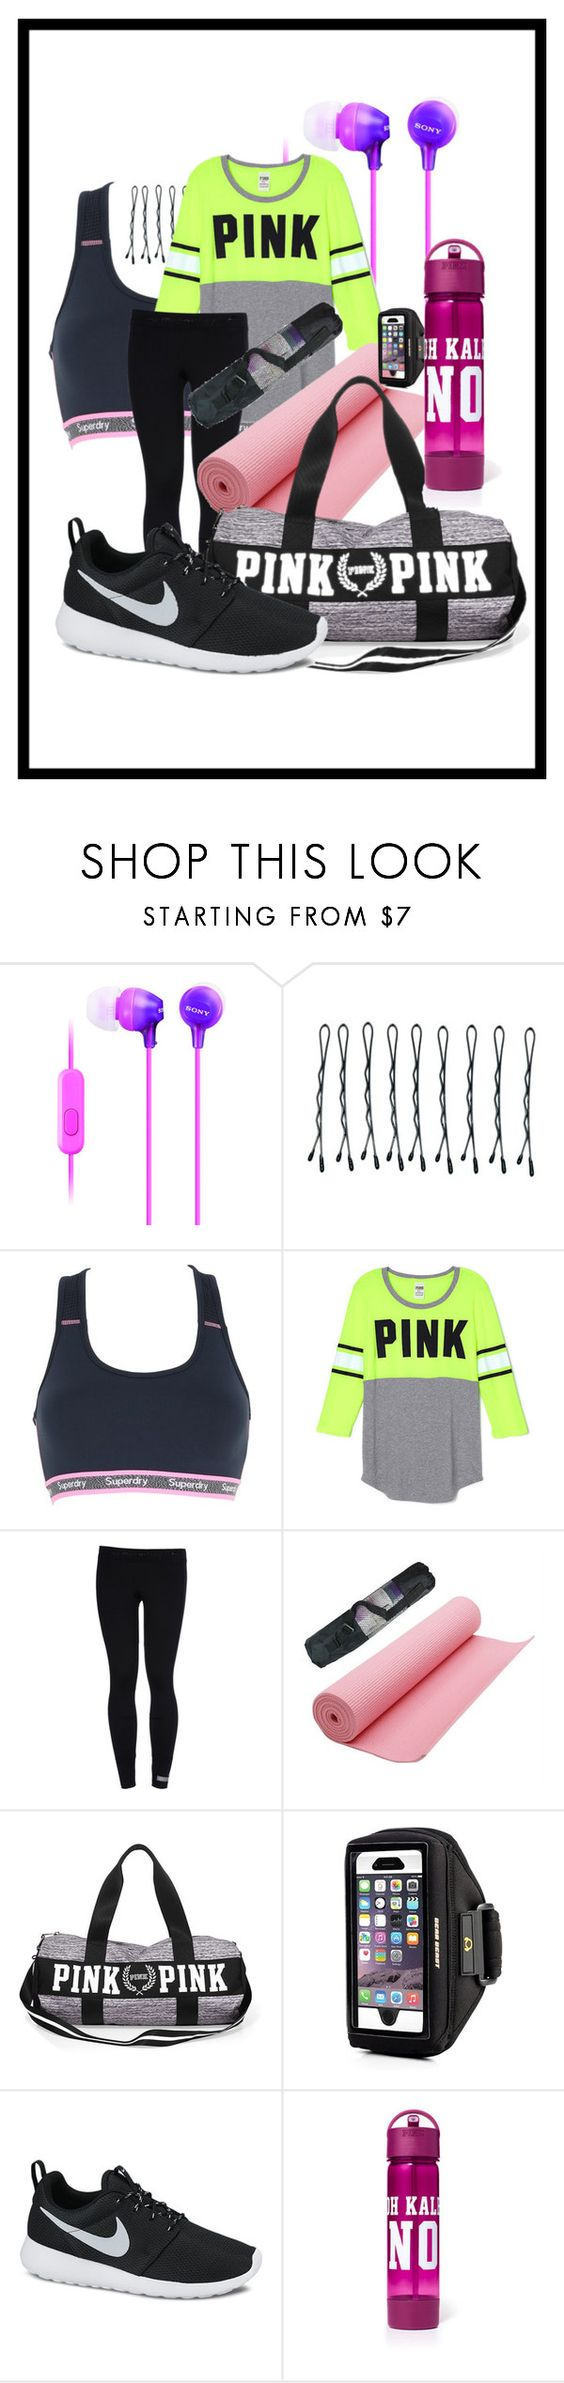 """Day-21"" by kryslyn007 ❤ liked on Polyvore featuring Sony, BOBBY, Superdry, adidas and NIKE"